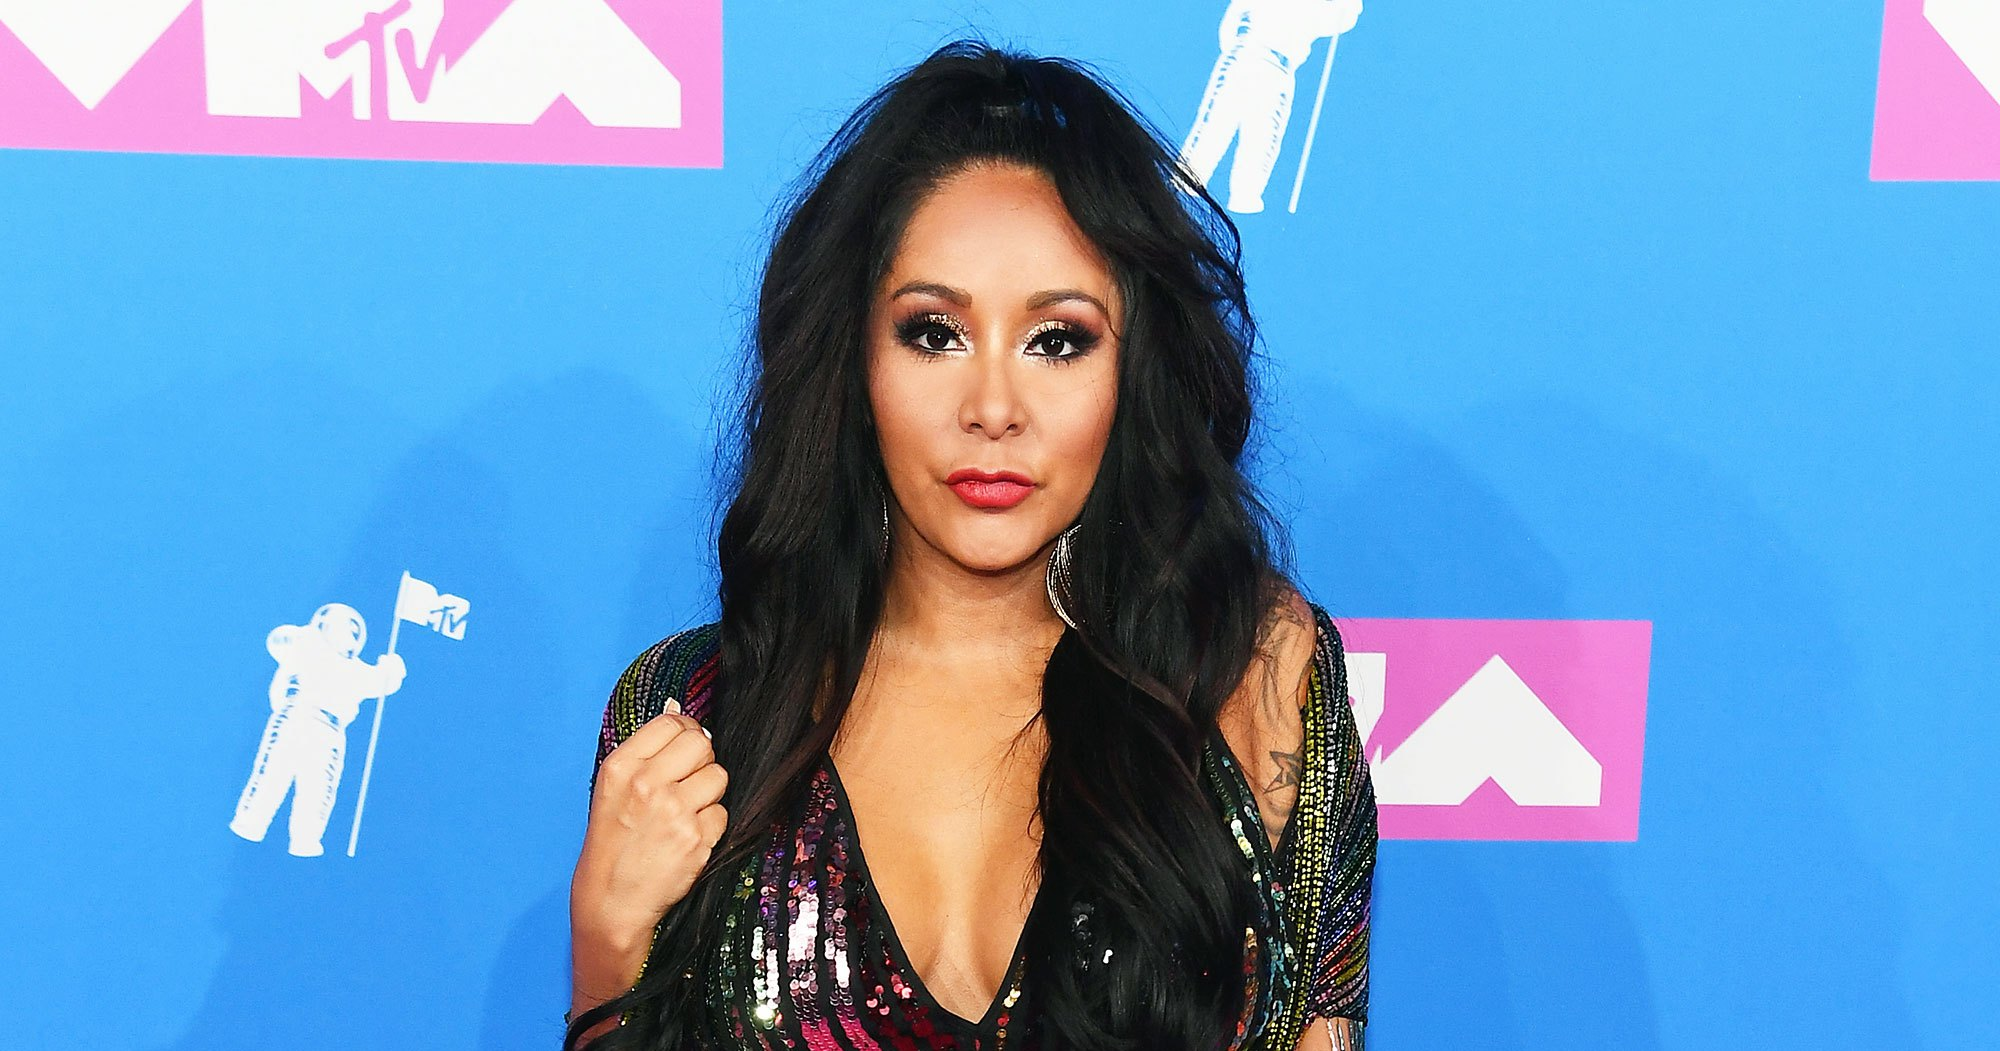 Jersey Shore's Nicole 'Snooki' Polizzi: People Call My Kids 'Ugly'